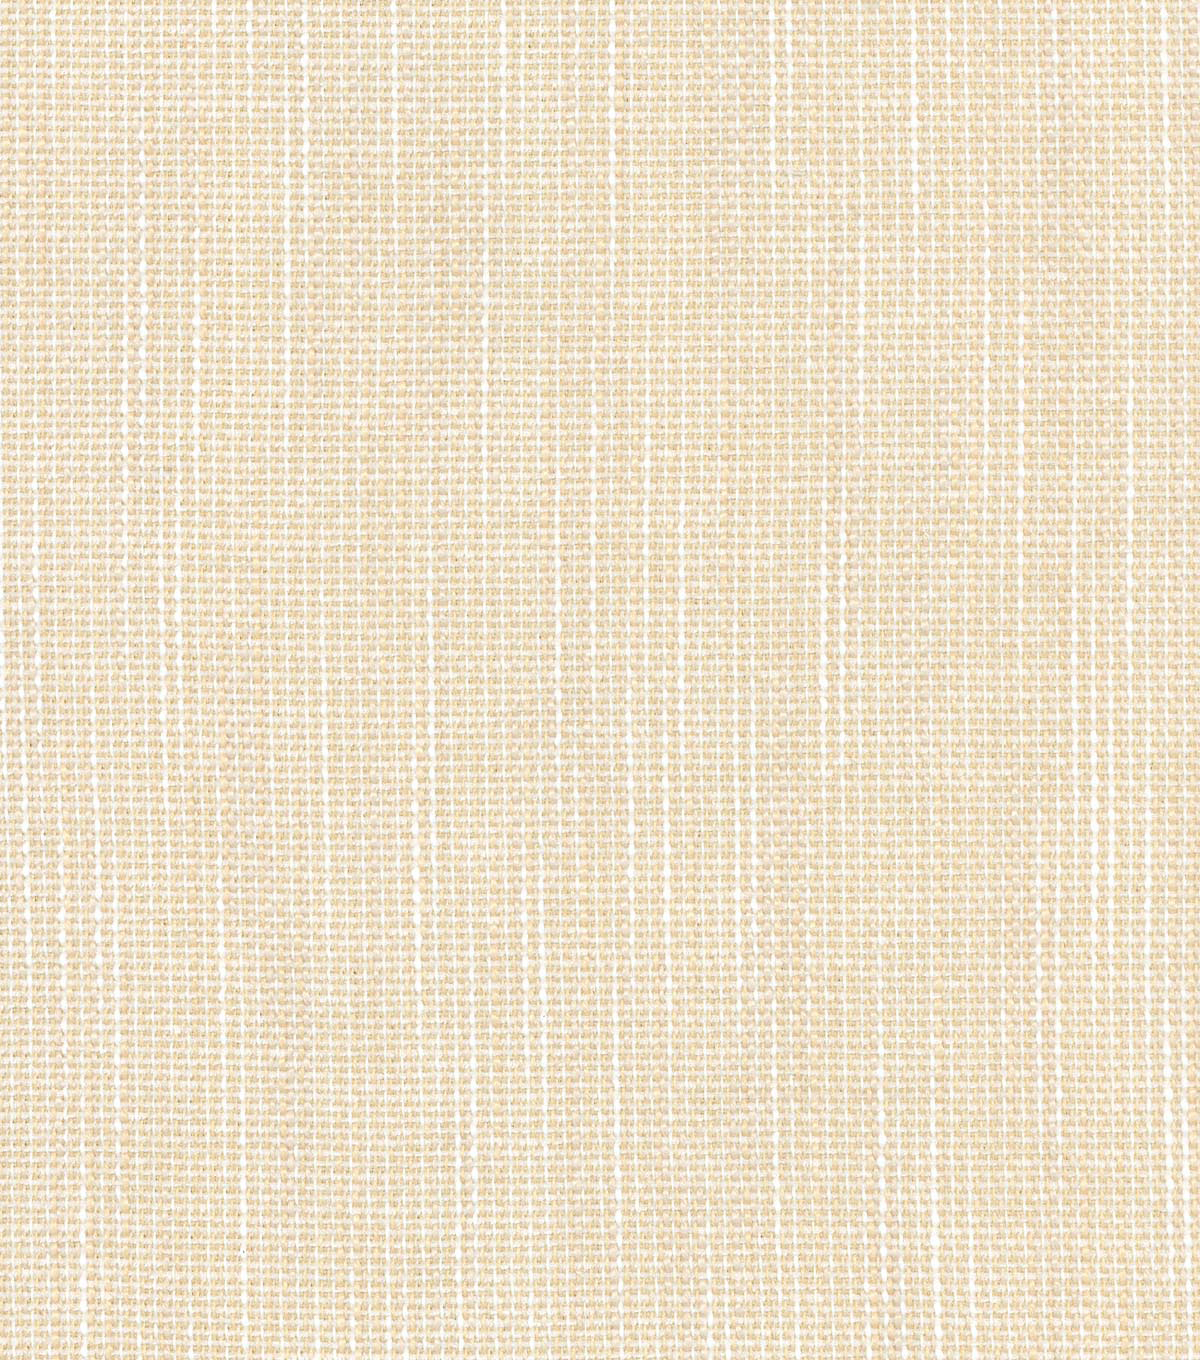 Home Decor 8\u0022x8\u0022 Swatch Fabric-Waverly Varick Parchment